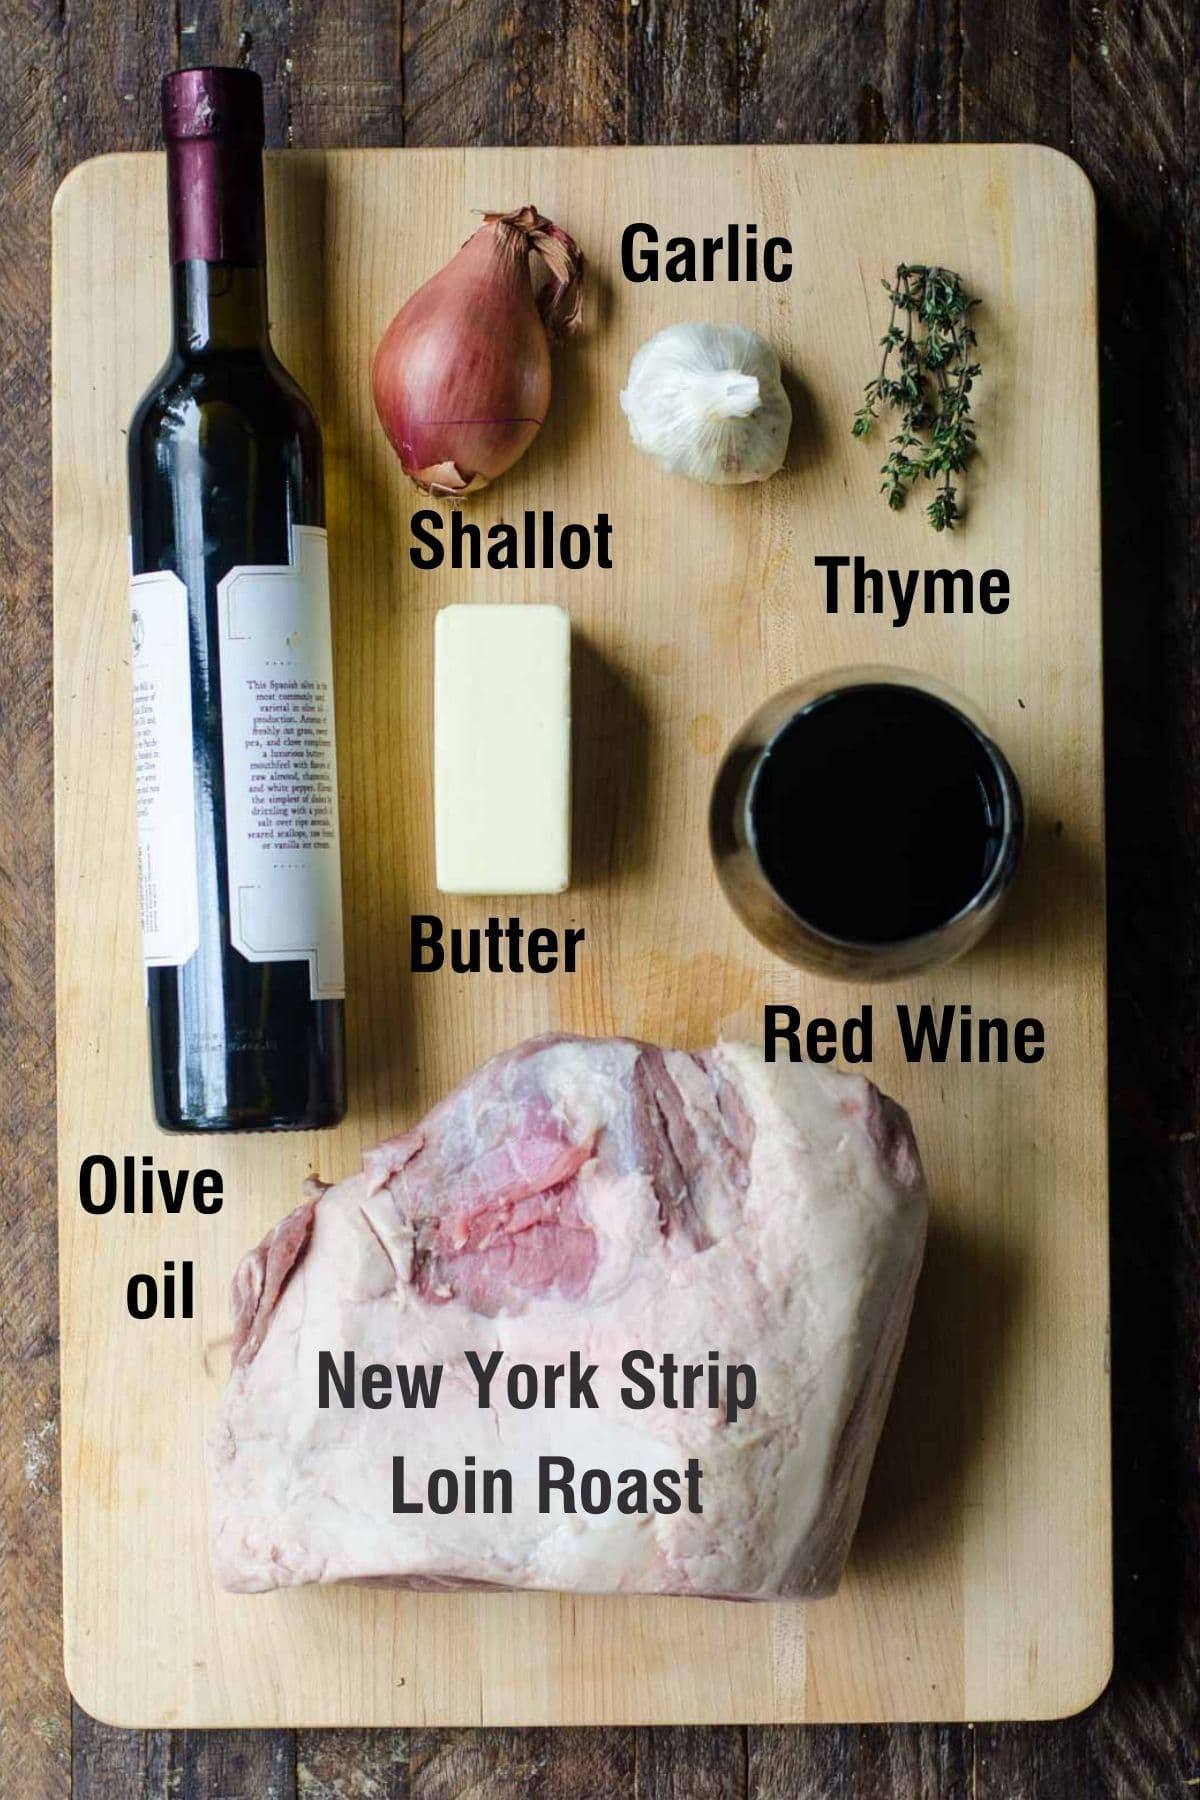 Ingredients on a cutting board for making new york strip roast.